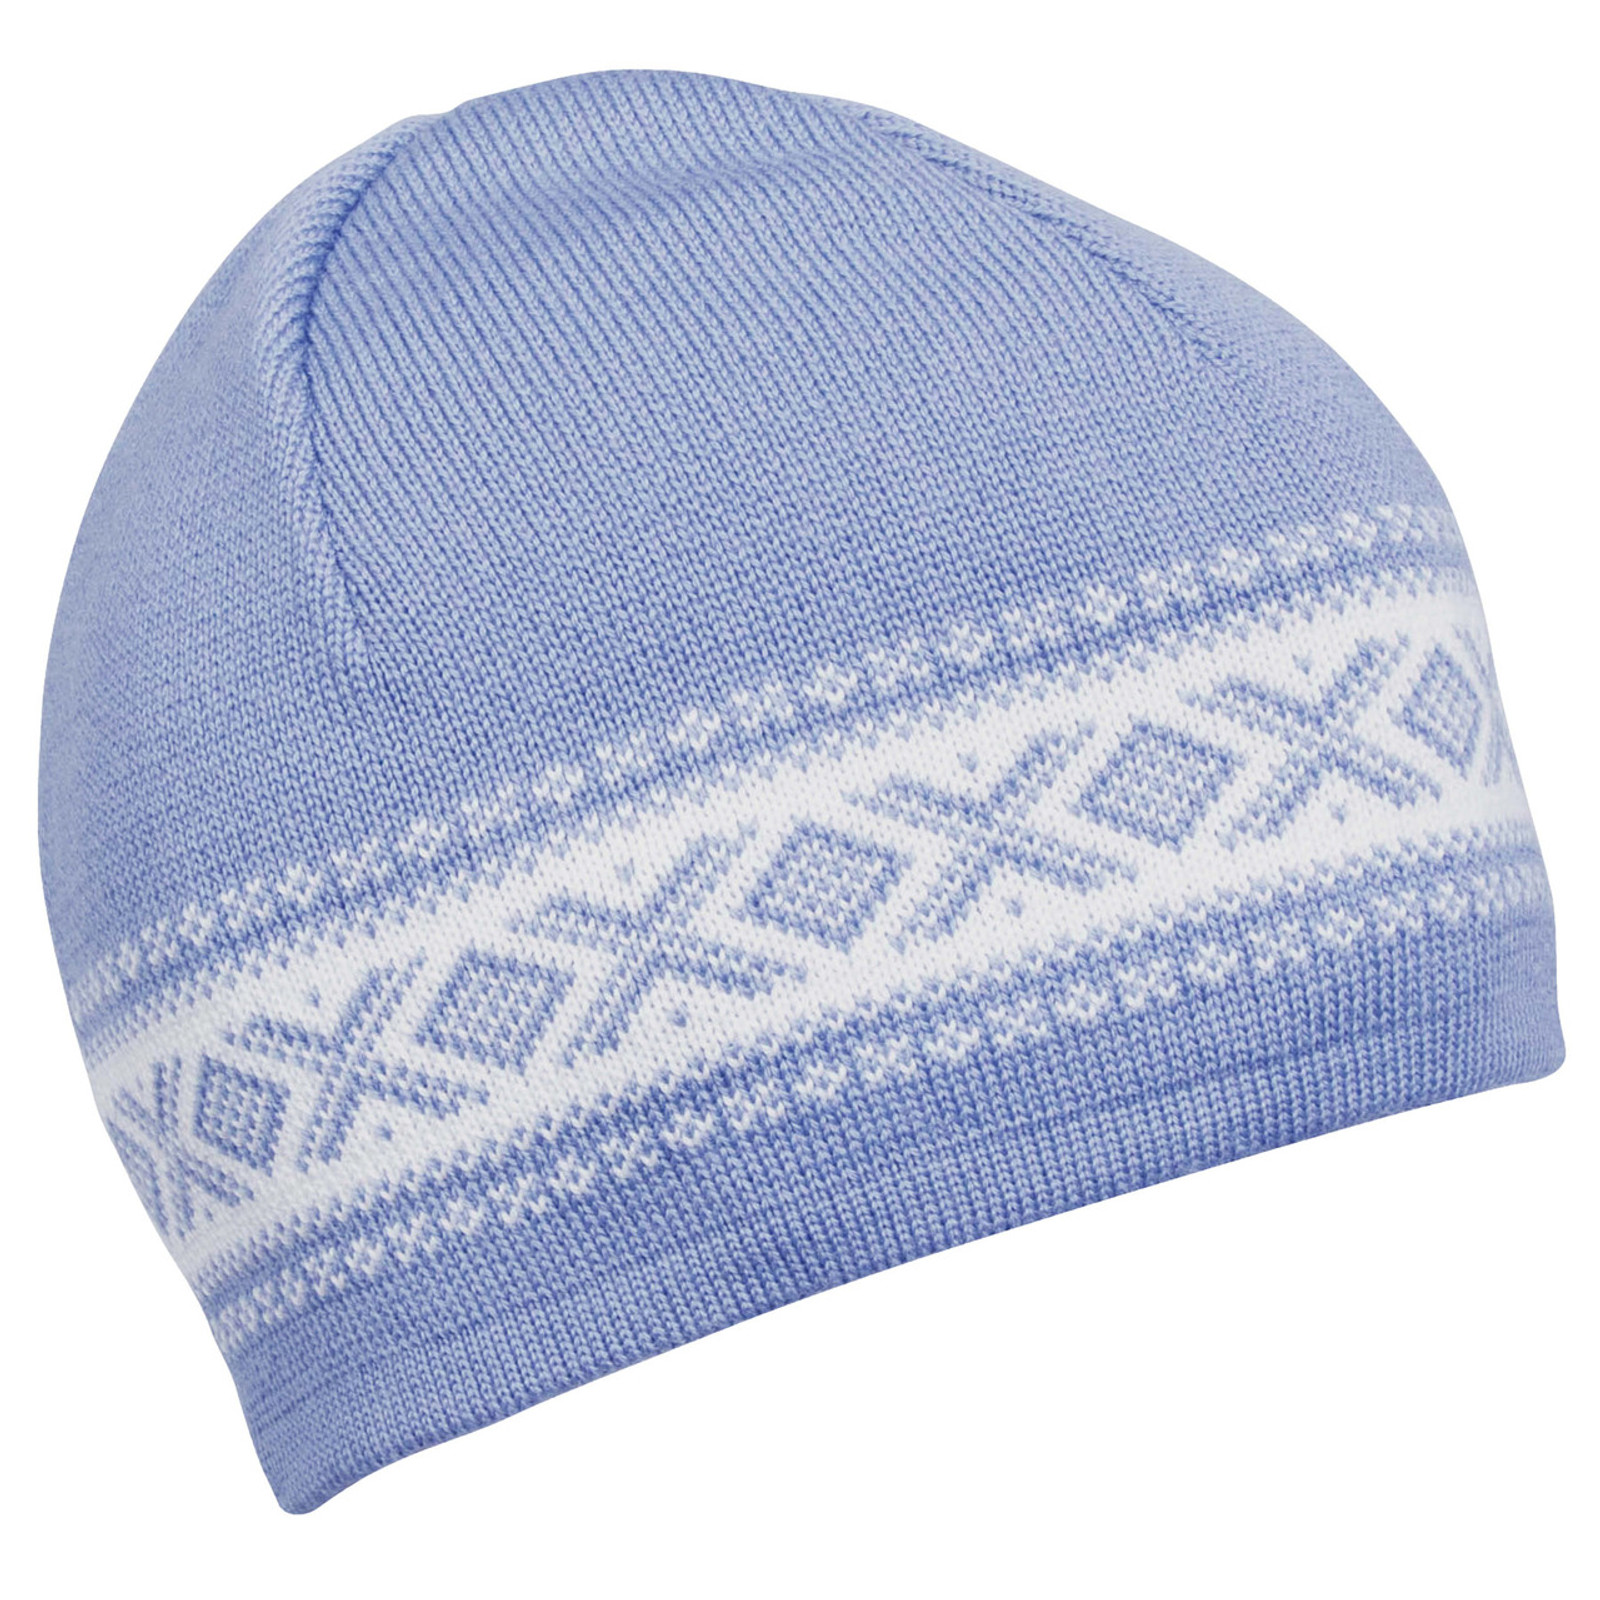 Dale of Norway, Cortina Merino Hat in Blue Shadow/Off White, 48211-D